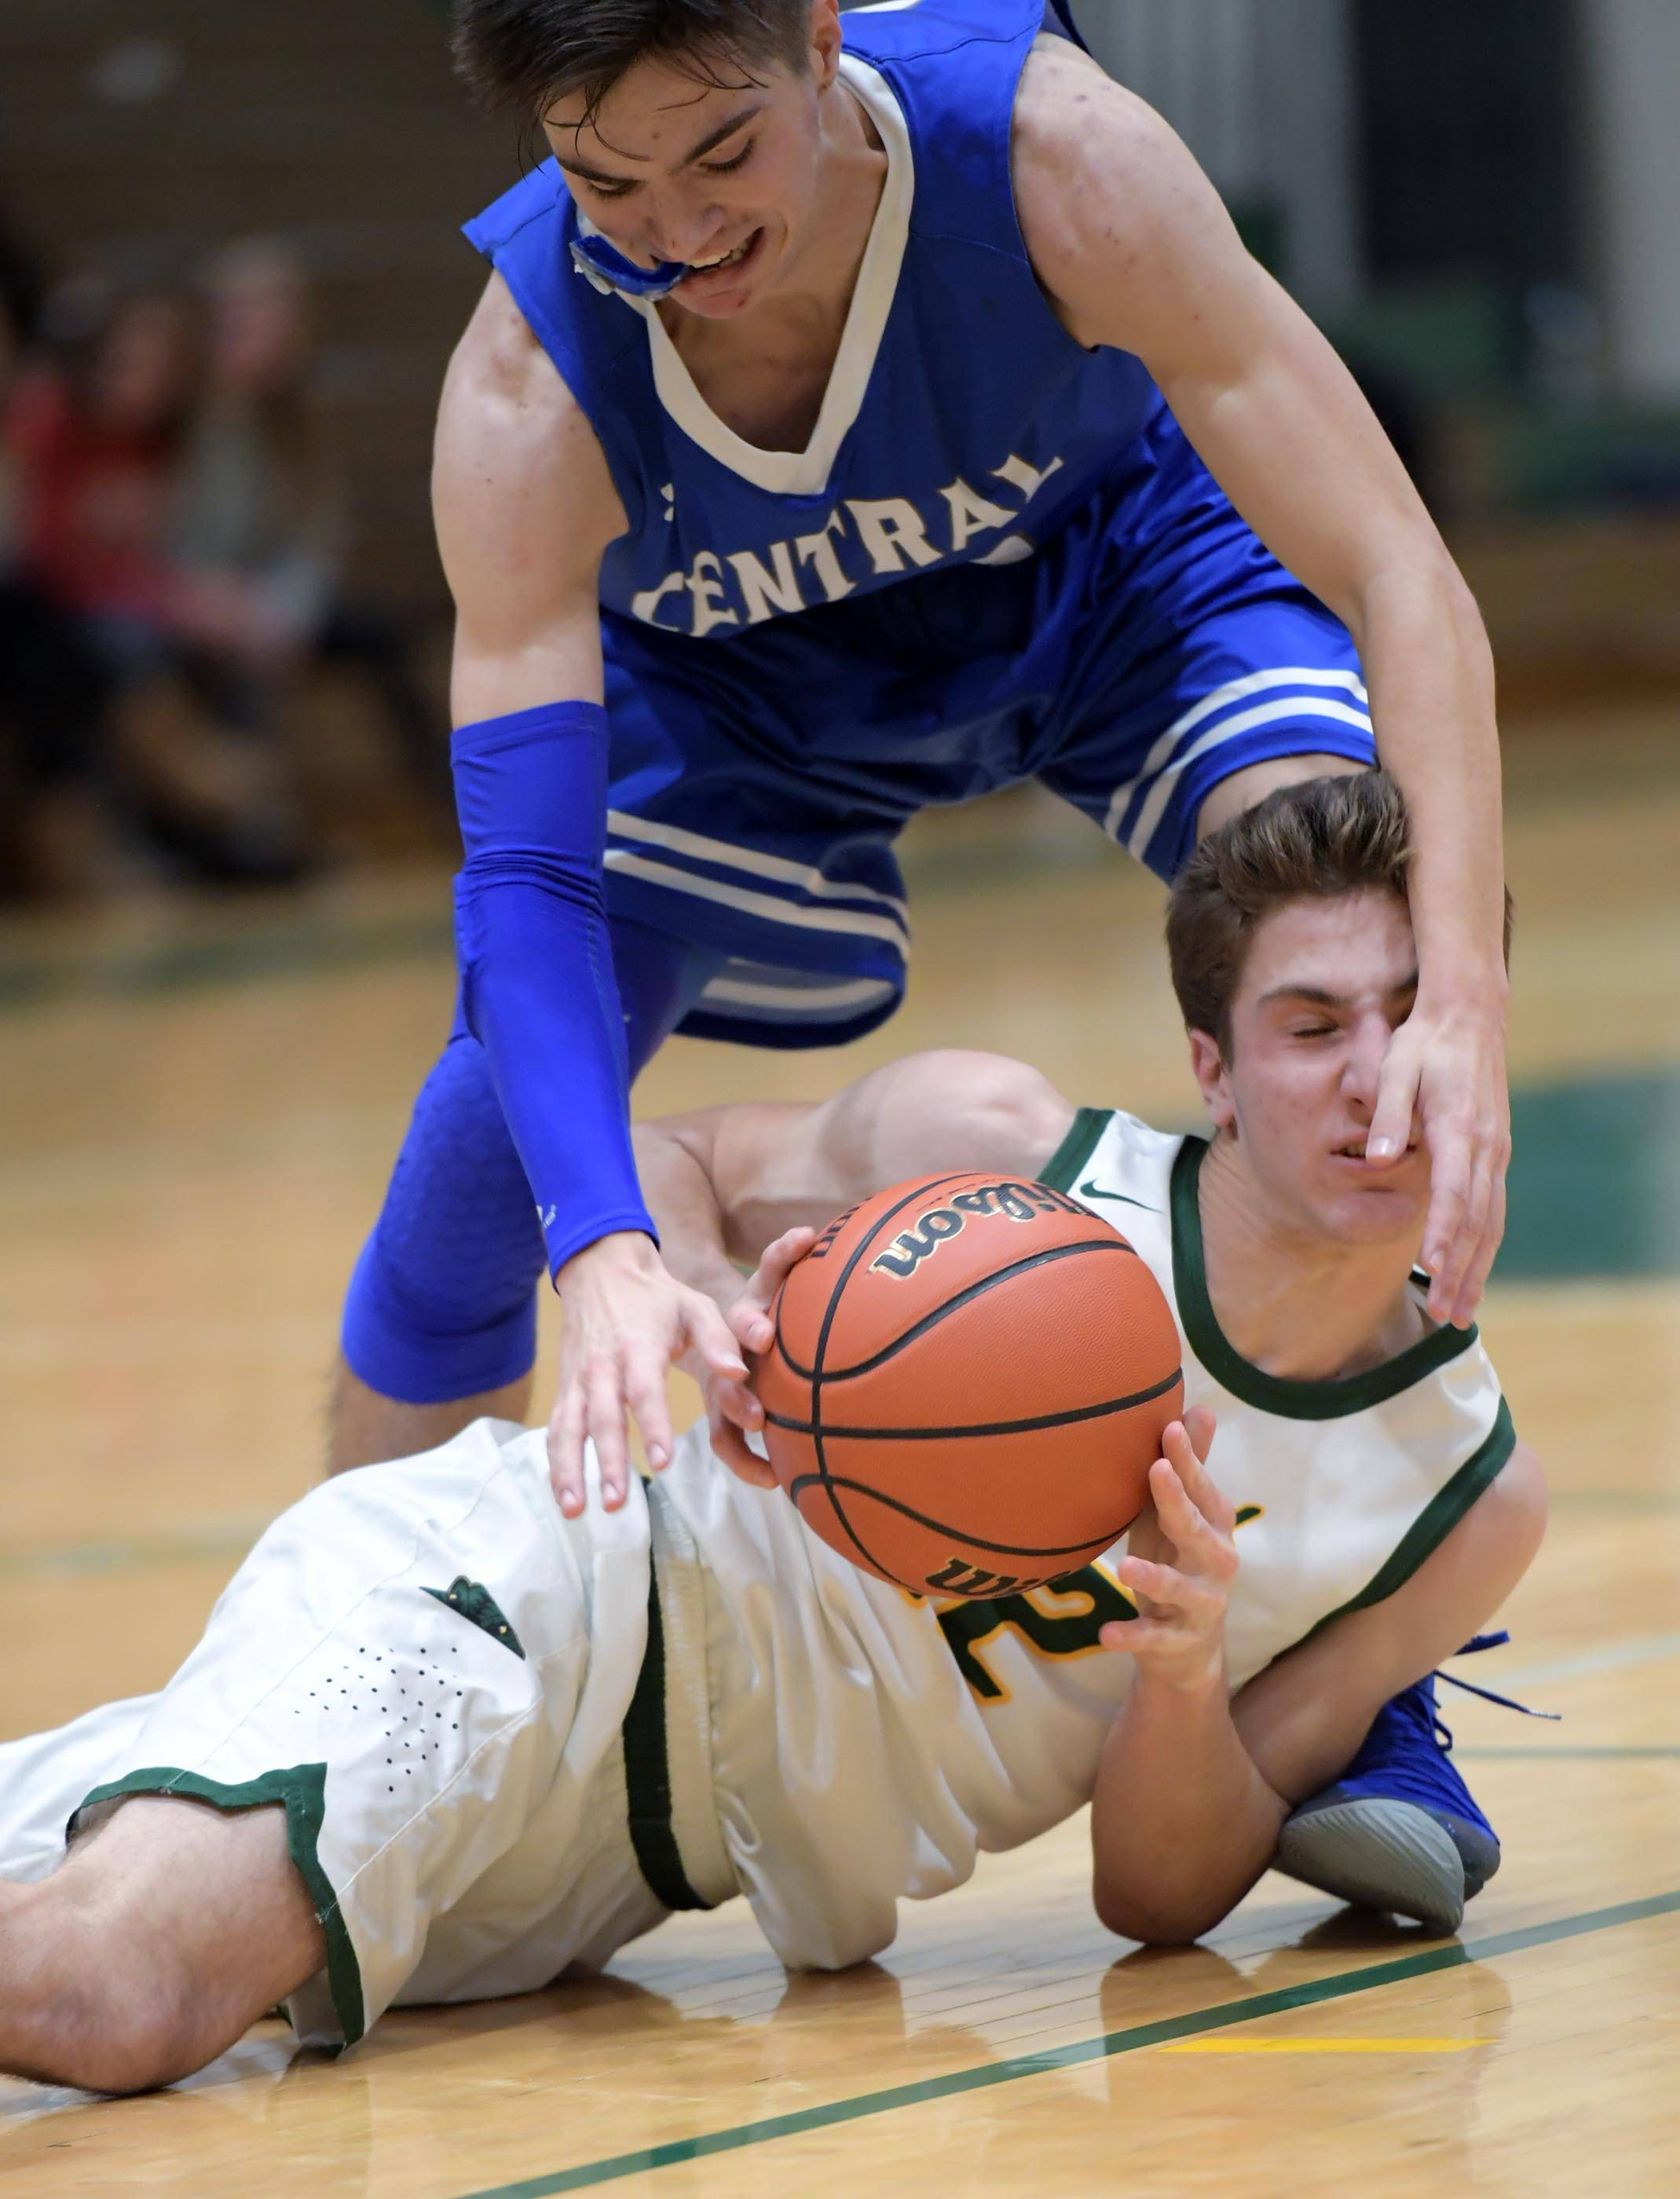 Burlington Central's Michael Kalusa reaches for the ball as Crystal Lake South's Ryan Lawson falls to the hardwood Wednesday in Crystal Lake.